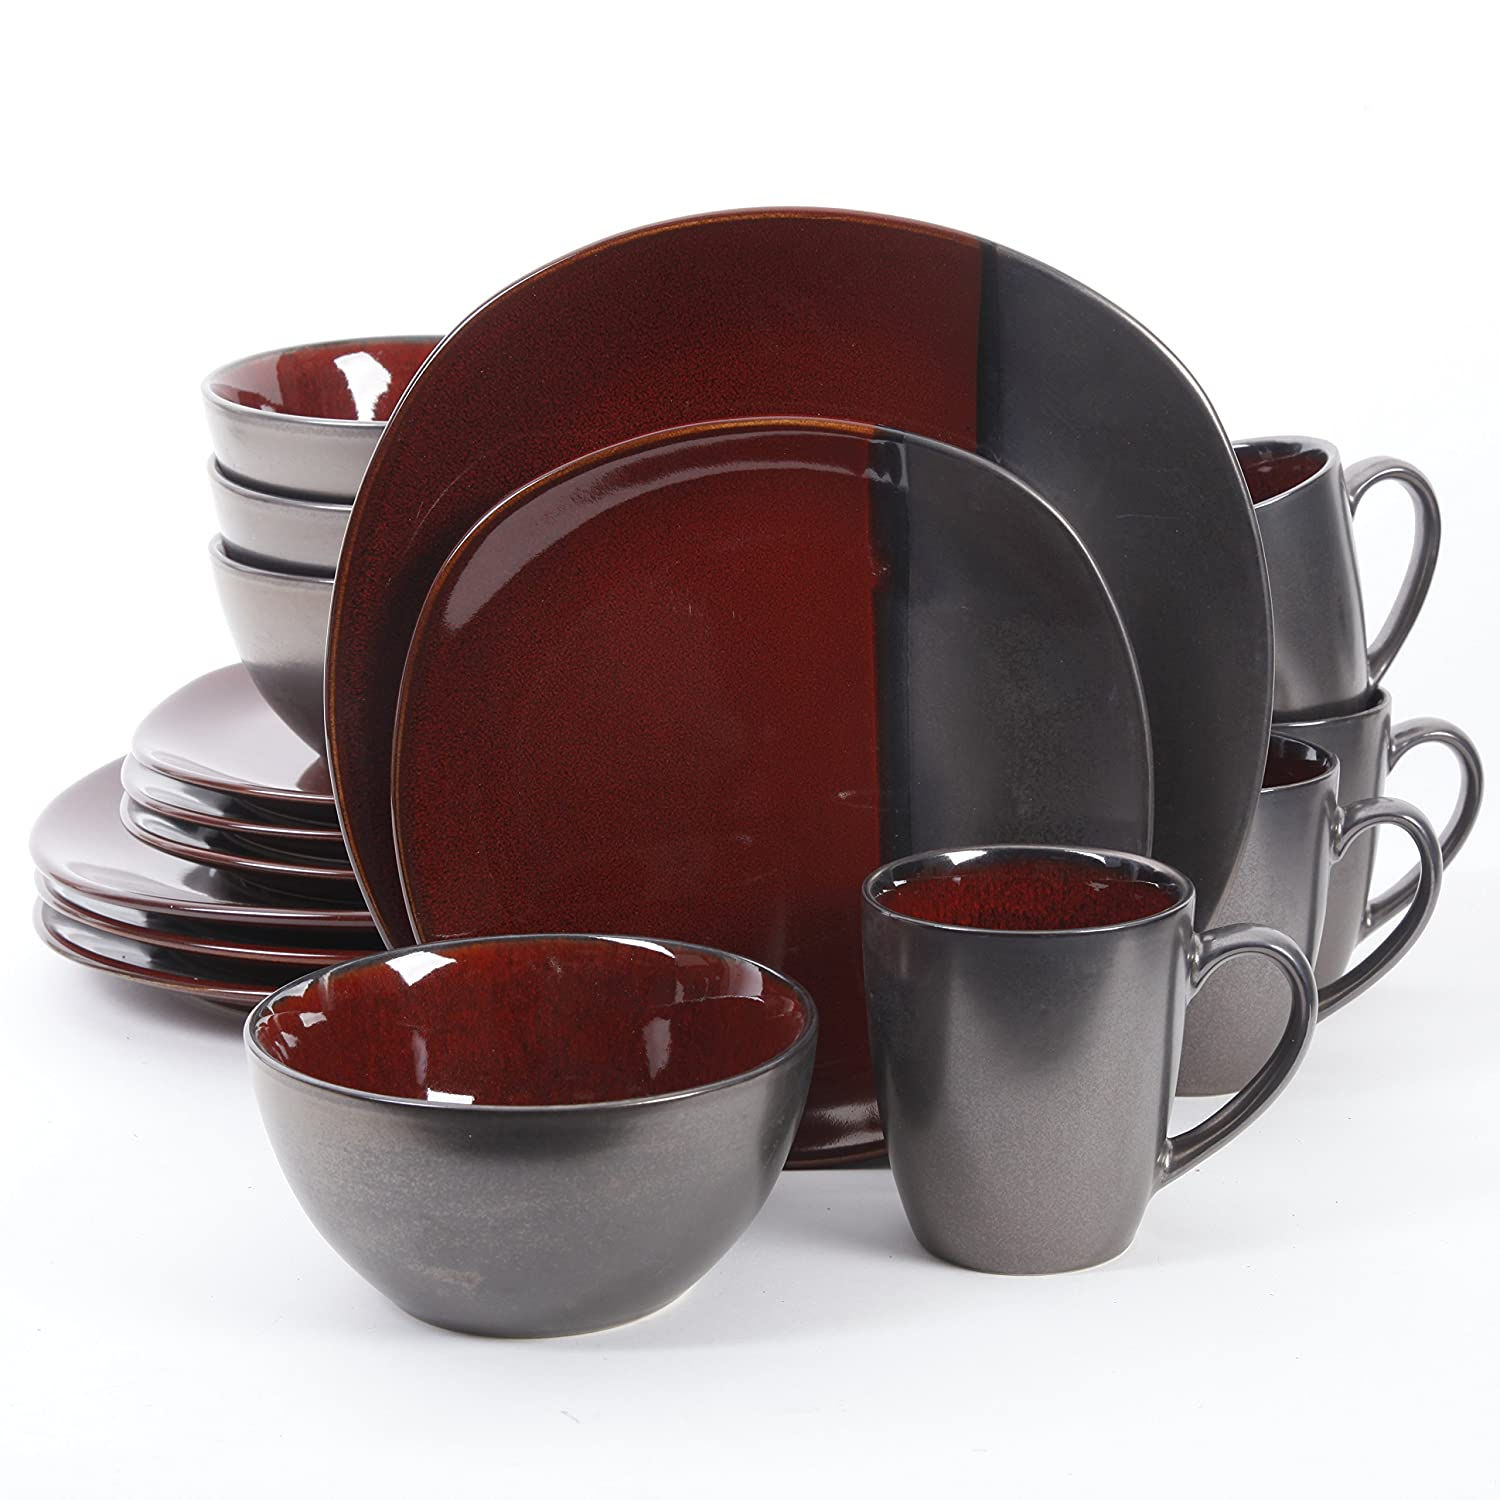 Gibson Elite 16 Piece Volterra Soft Square Dinnerware Set with Reactive Glaze Stoneware, Red and Grey 109009.16RM